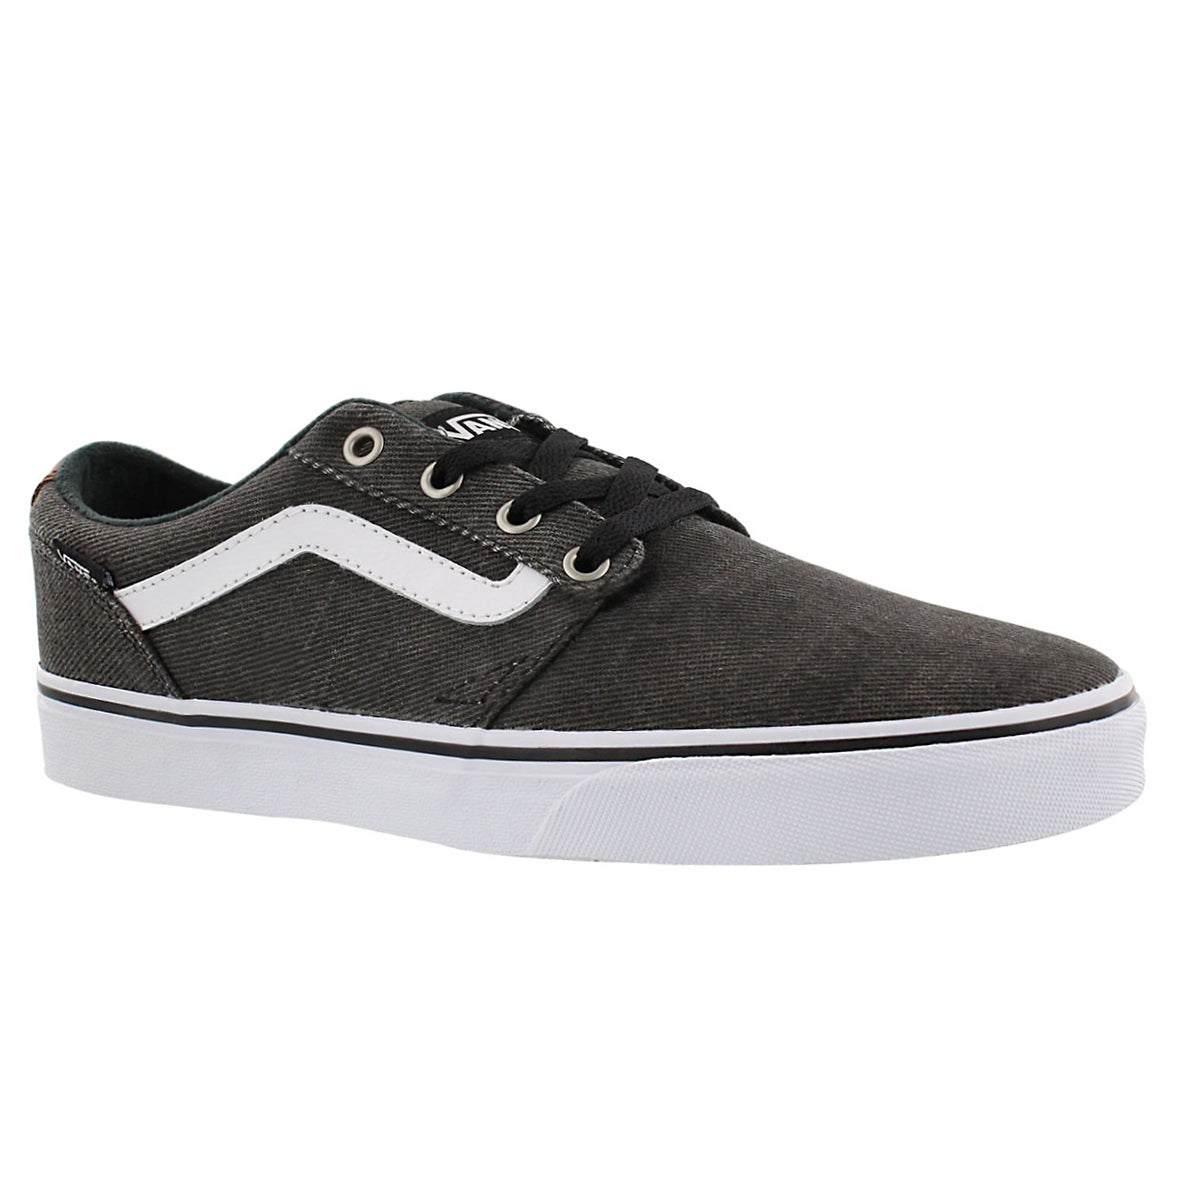 vans 39 men 39 s chapman stripe lace up sneaker ebay. Black Bedroom Furniture Sets. Home Design Ideas